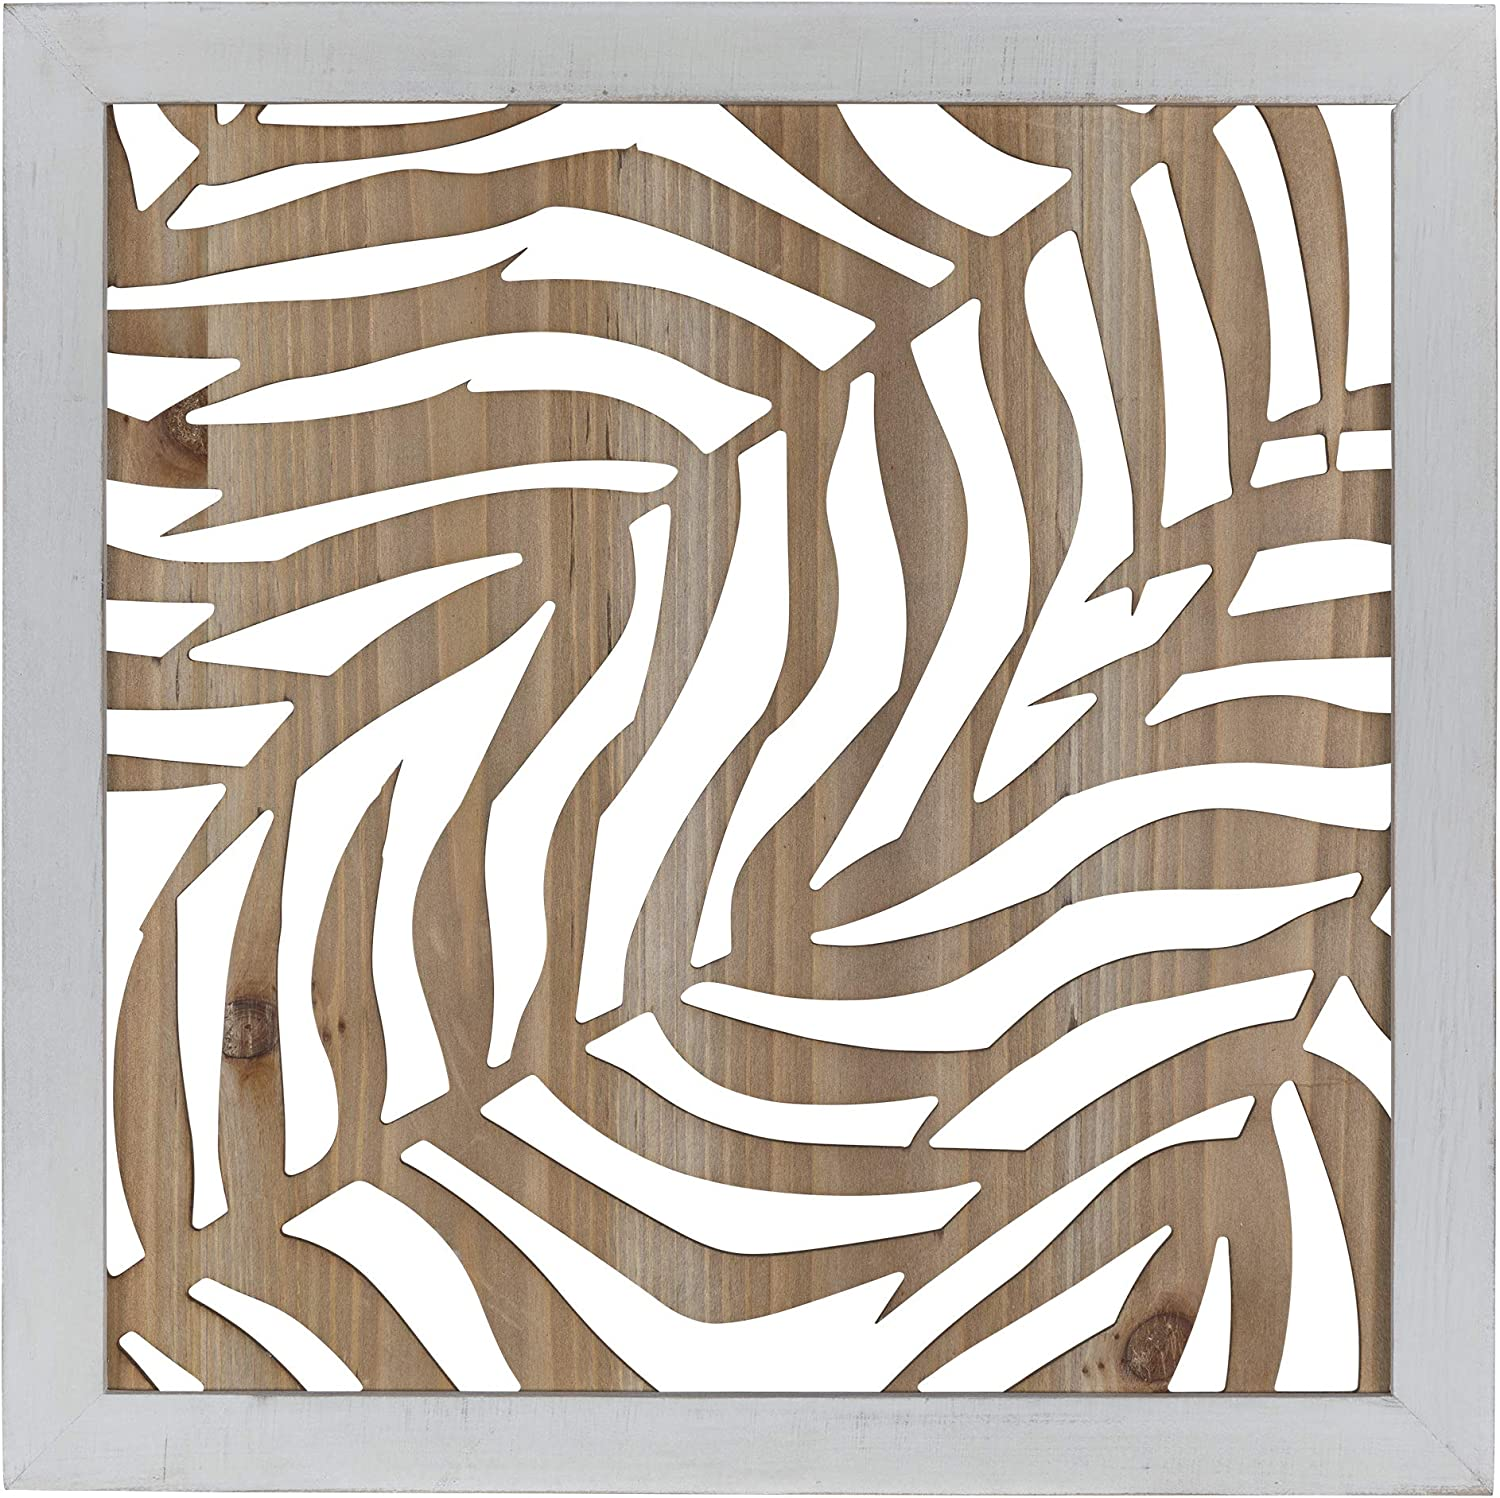 Stratton Be super welcome High quality Home Decor S36923 Wall Mul 1.00 X 16.00